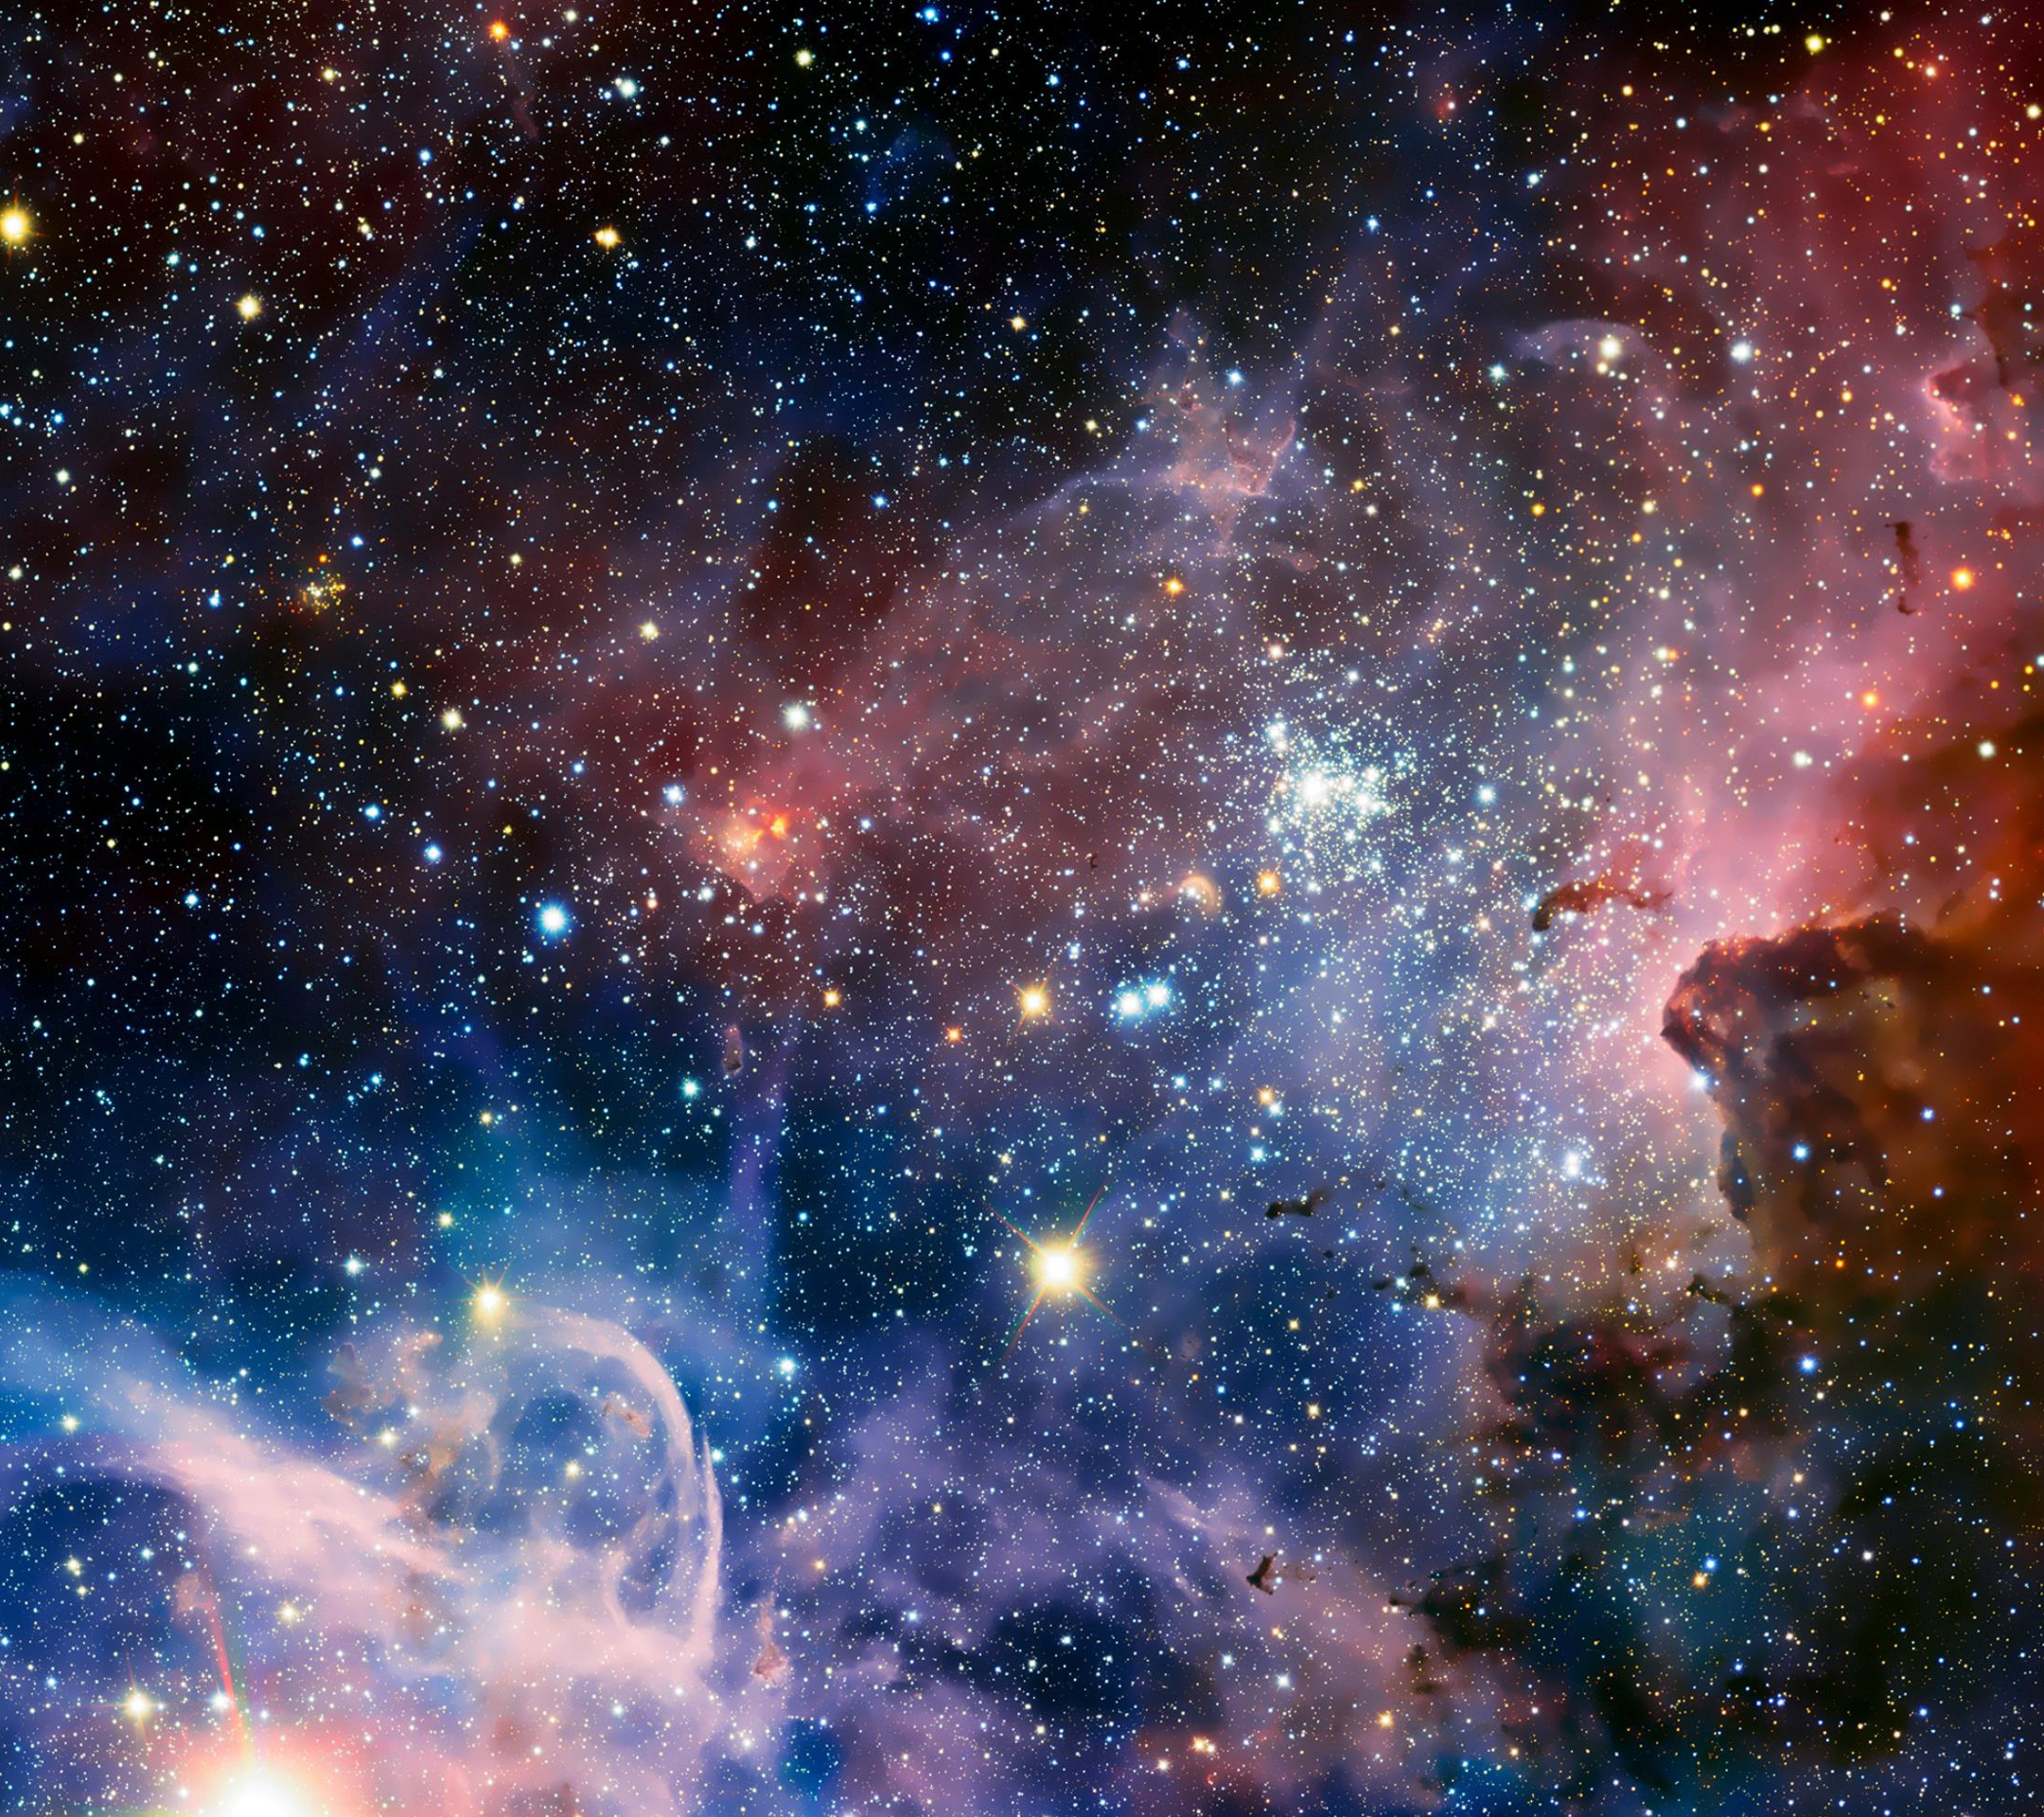 Nebula HD Wallpaper   Samsung Galaxy S5 HD Wallpapers 2160x1920